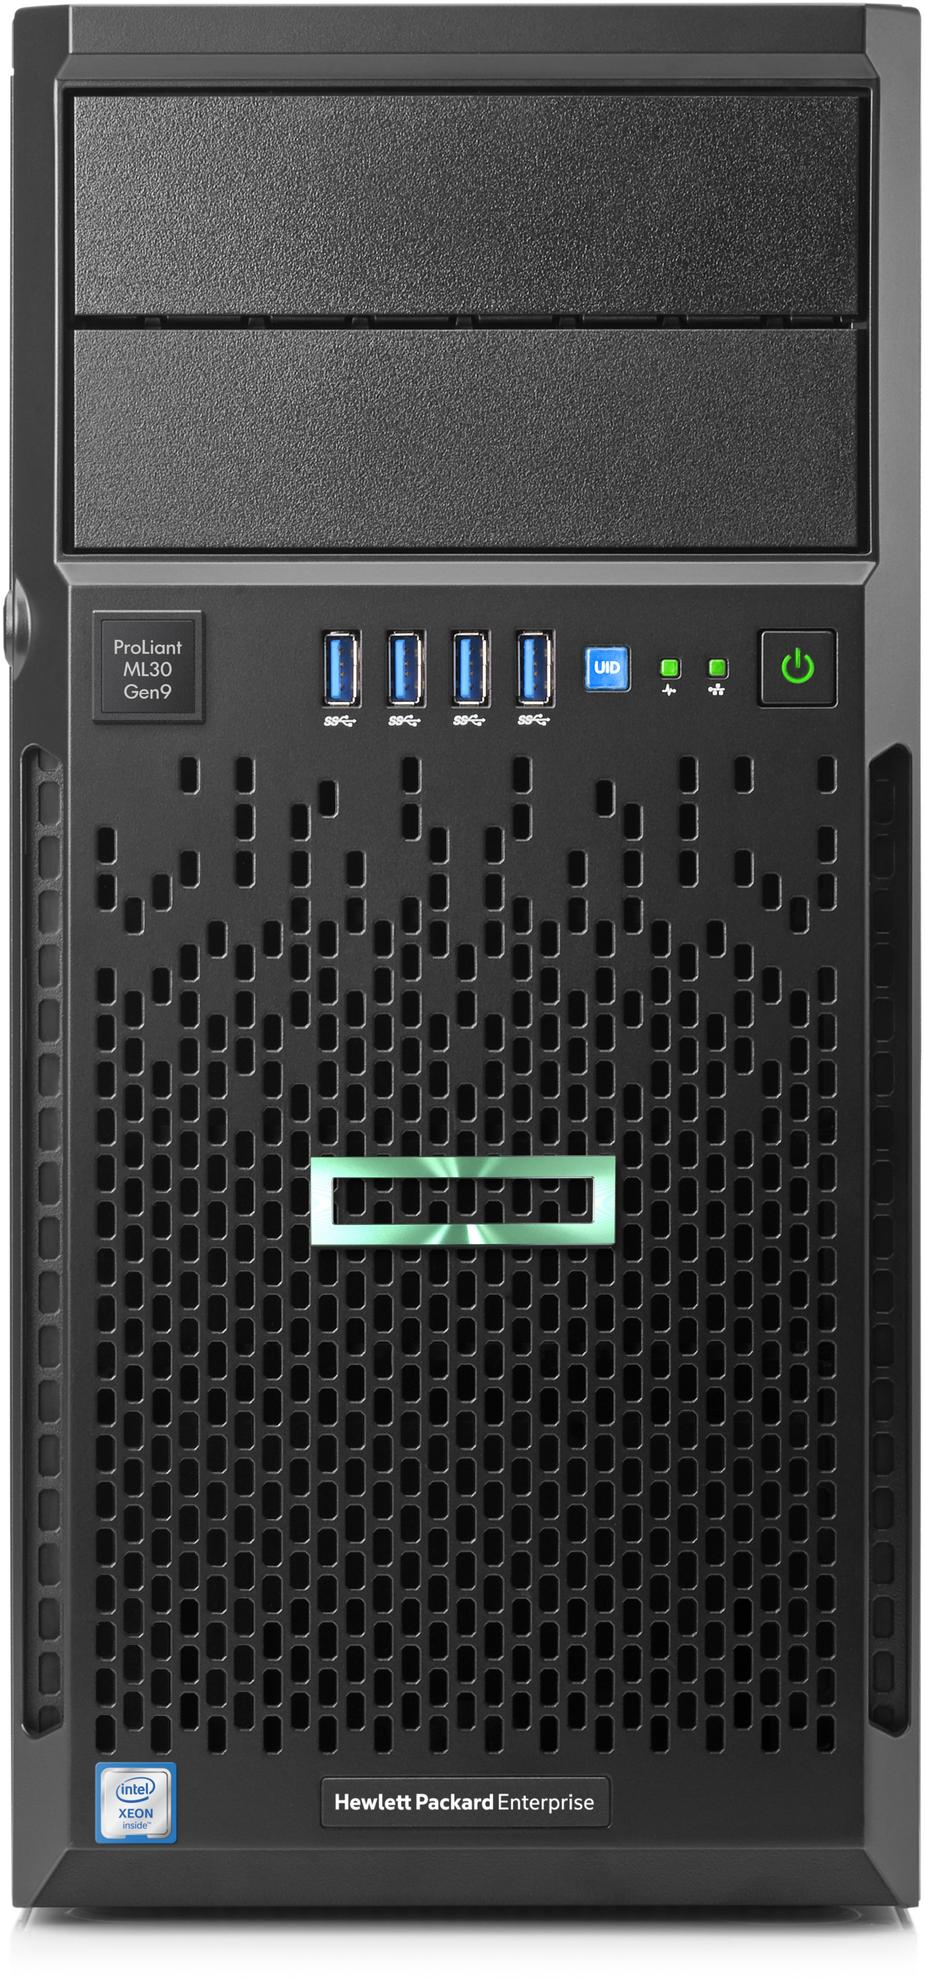 HPE ENTML30-001 PROLIANT ML30 GEN9 E3-1220V6 BUNDLE